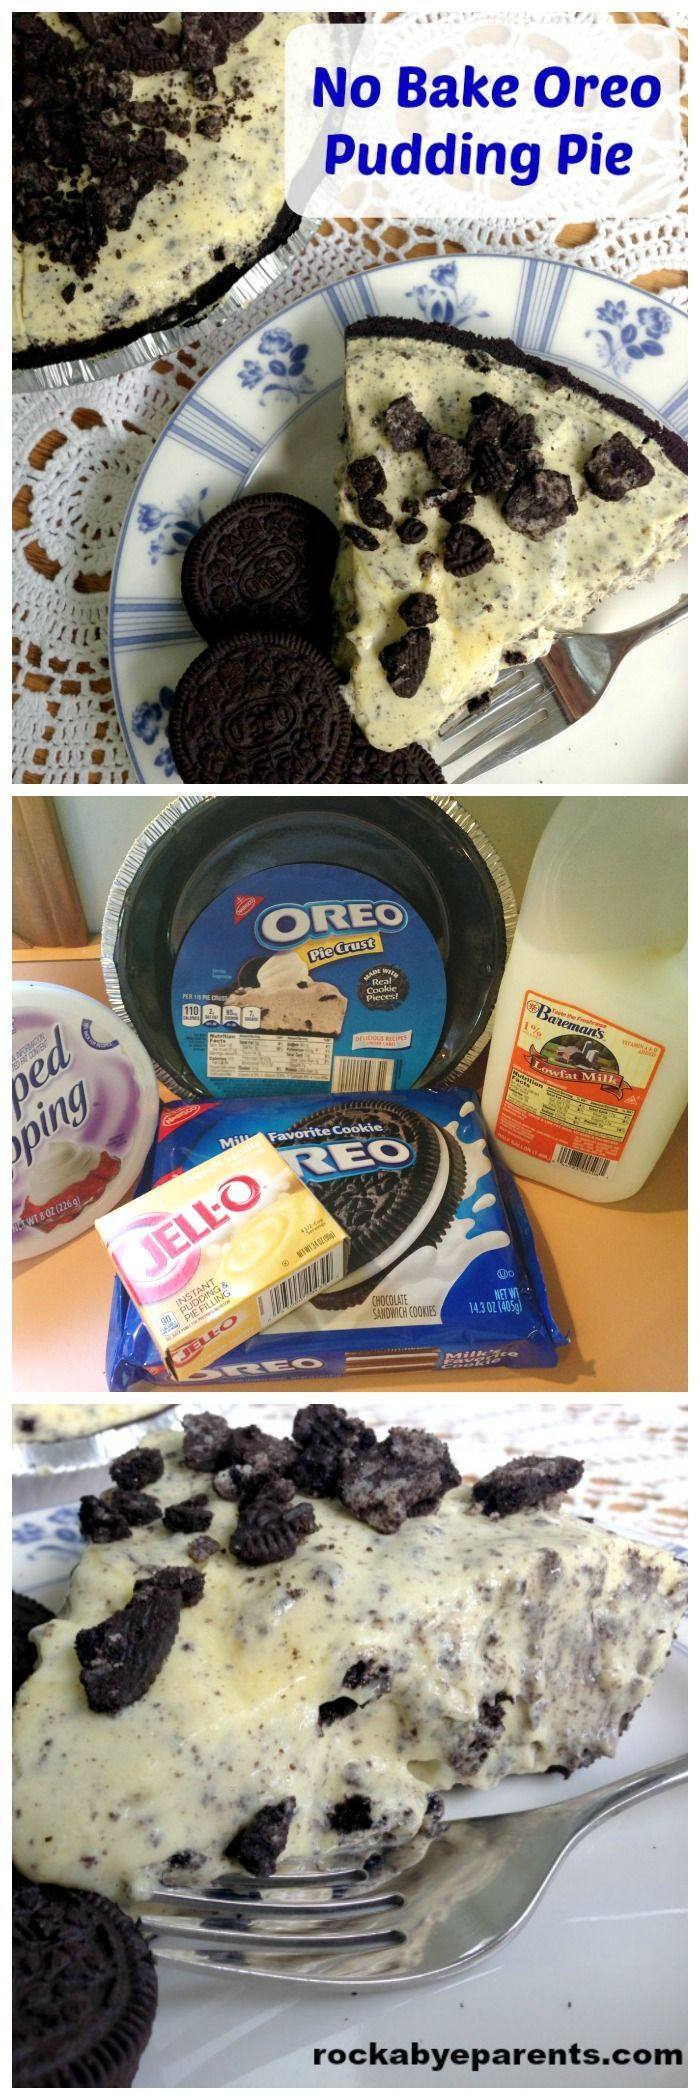 No Bake Oreo Pudding Pie: This dessert is so yummy, and even better it's quick and easy to make! - rockabyeparents.com